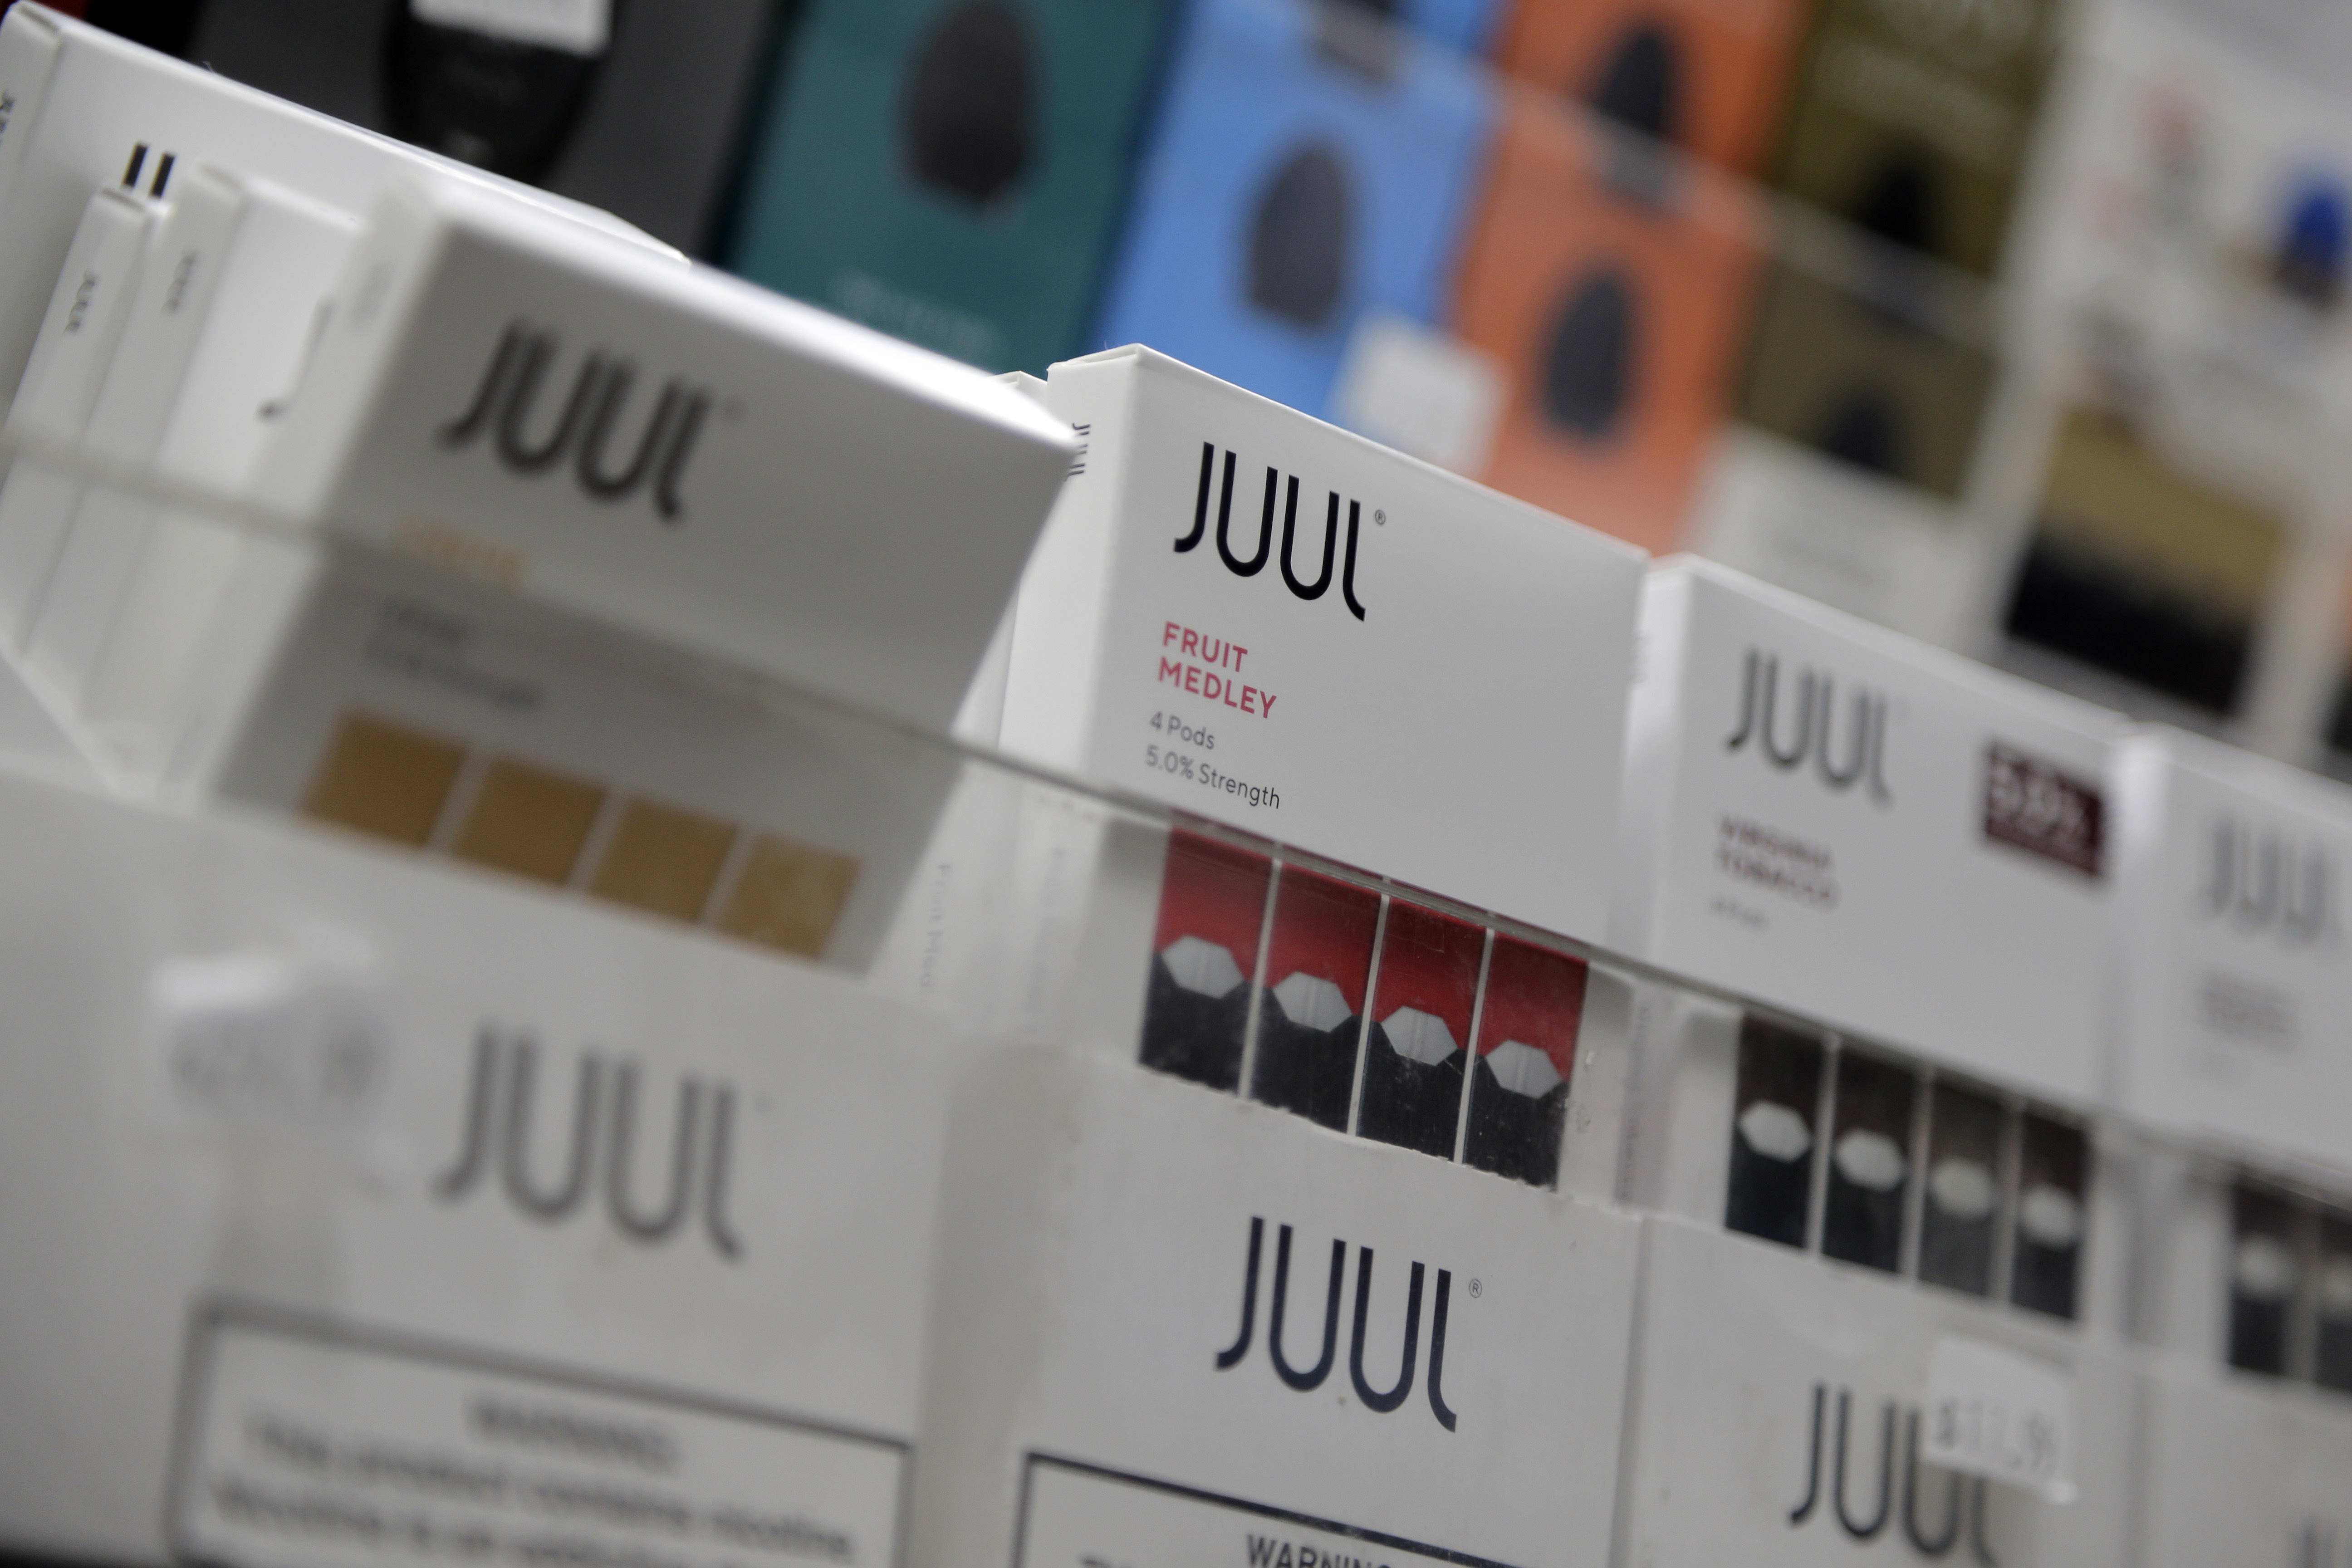 FILE - In this Dec. 20, 2018, file photo Juul products are displayed at a smoke shop in New York. Under scrutiny amid a wave of underage vaping, Juul is pushing into television with a multimillion-dollar campaign rebranding itself as a stop-smoking aid fo